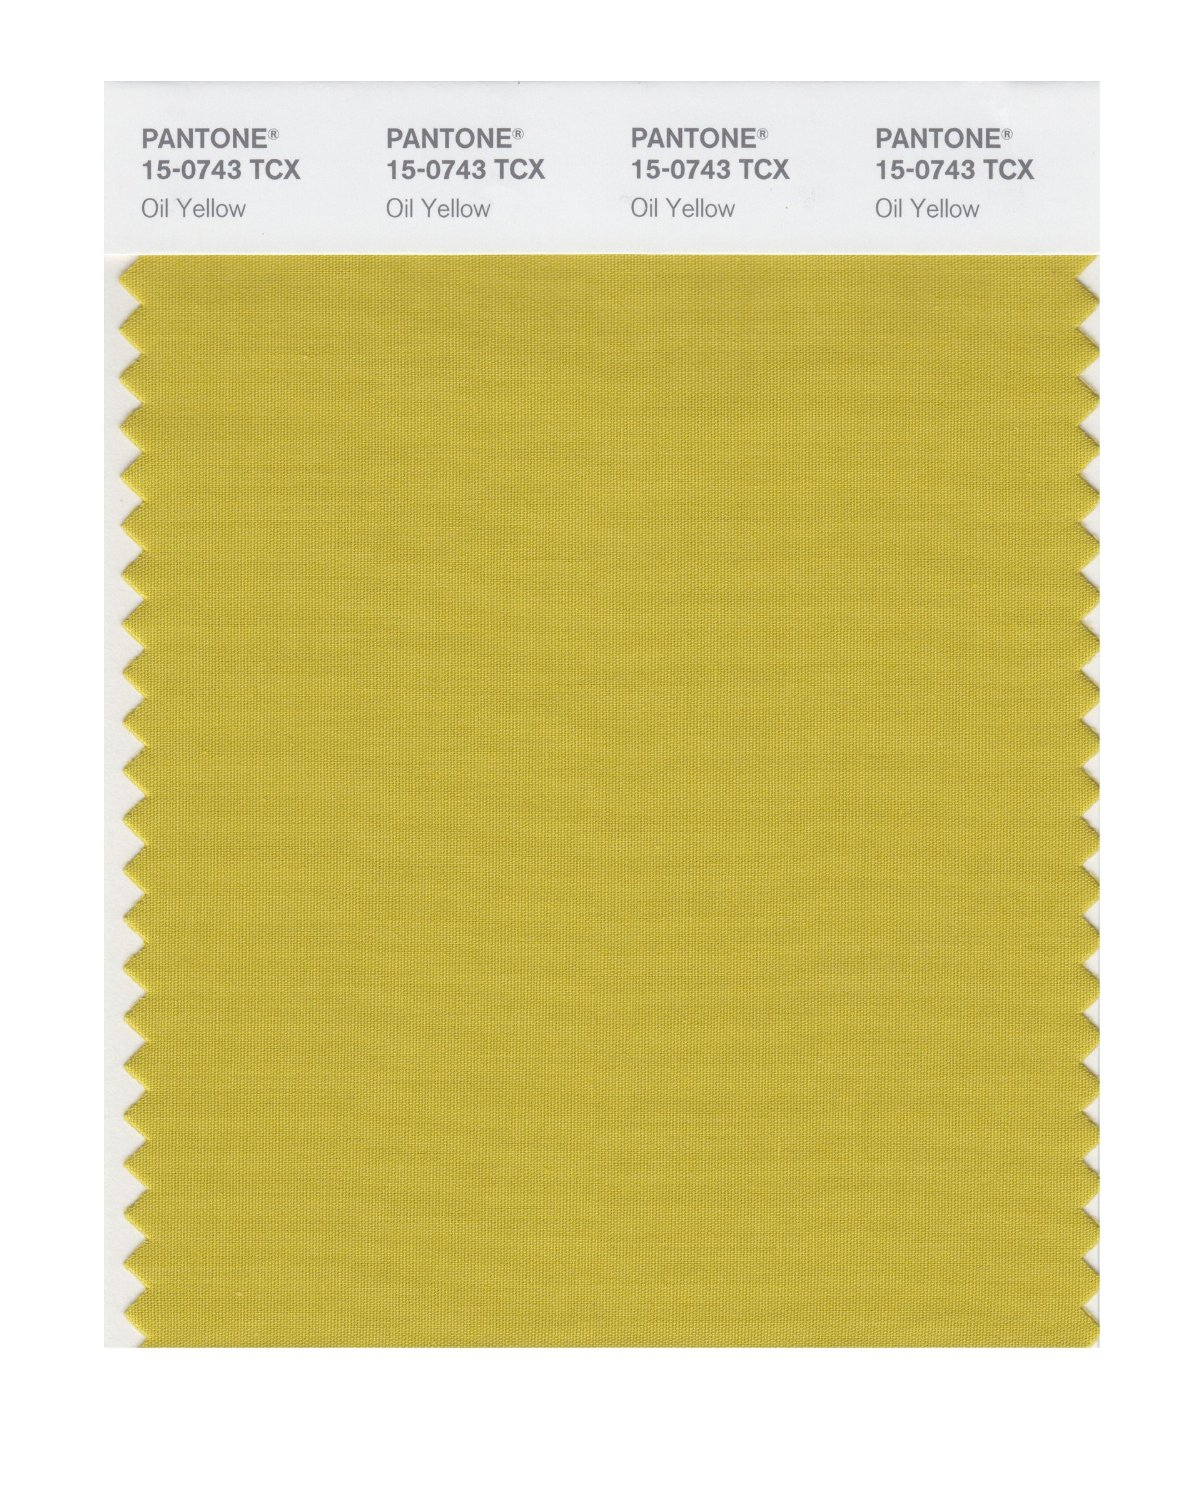 Pantone Smart Swatch 15-0743 Oil Yellow